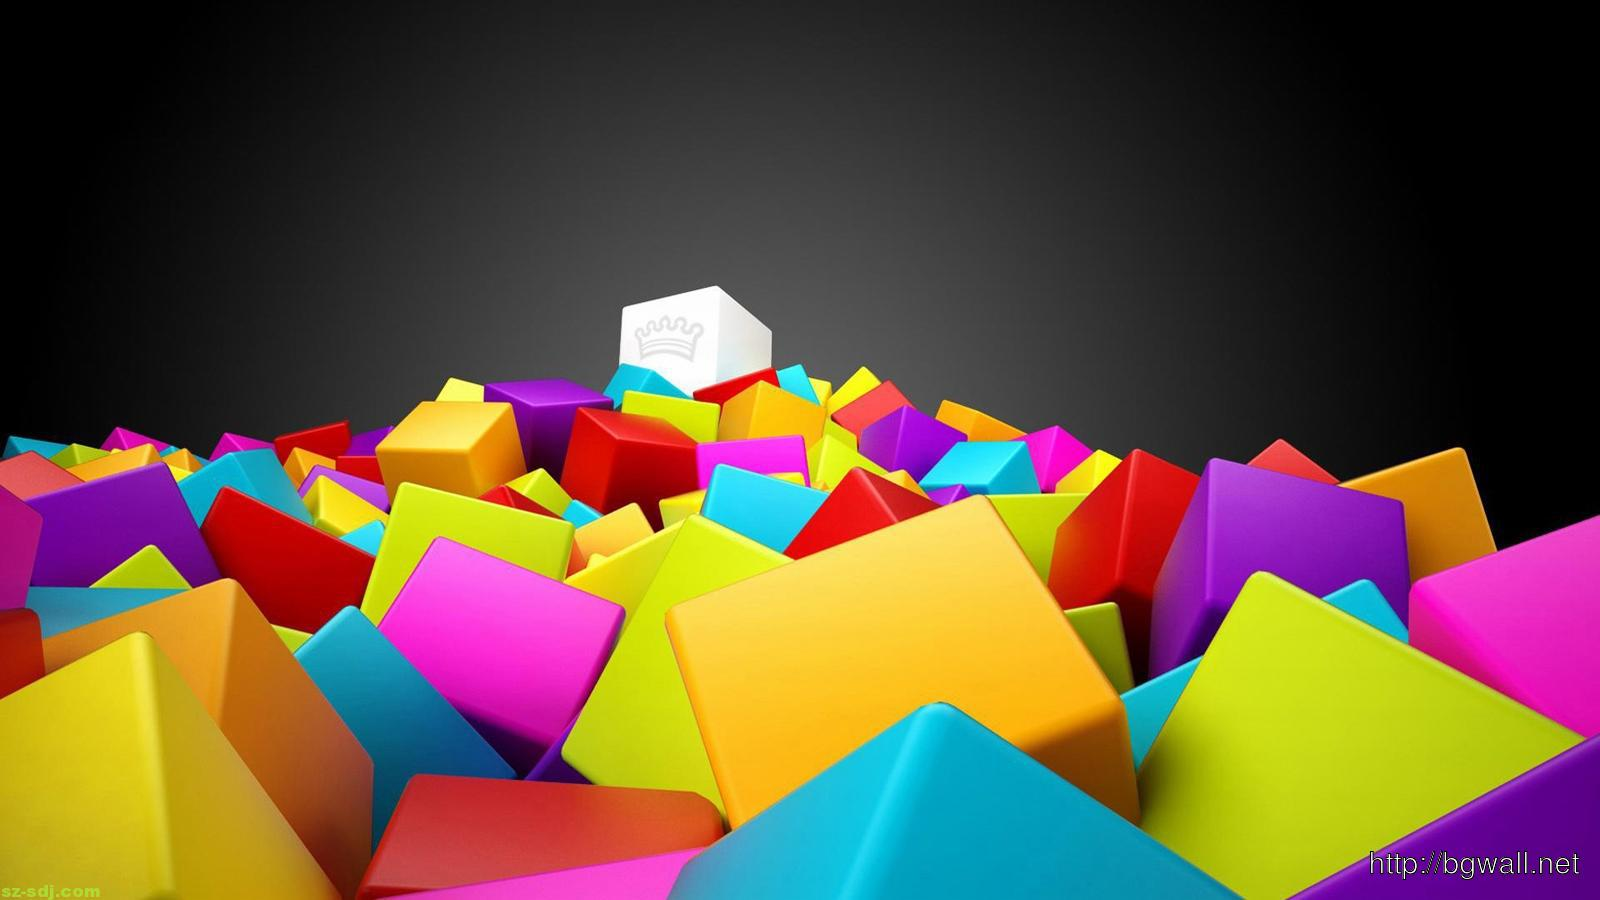 cube-colorful-wallpaper-hd